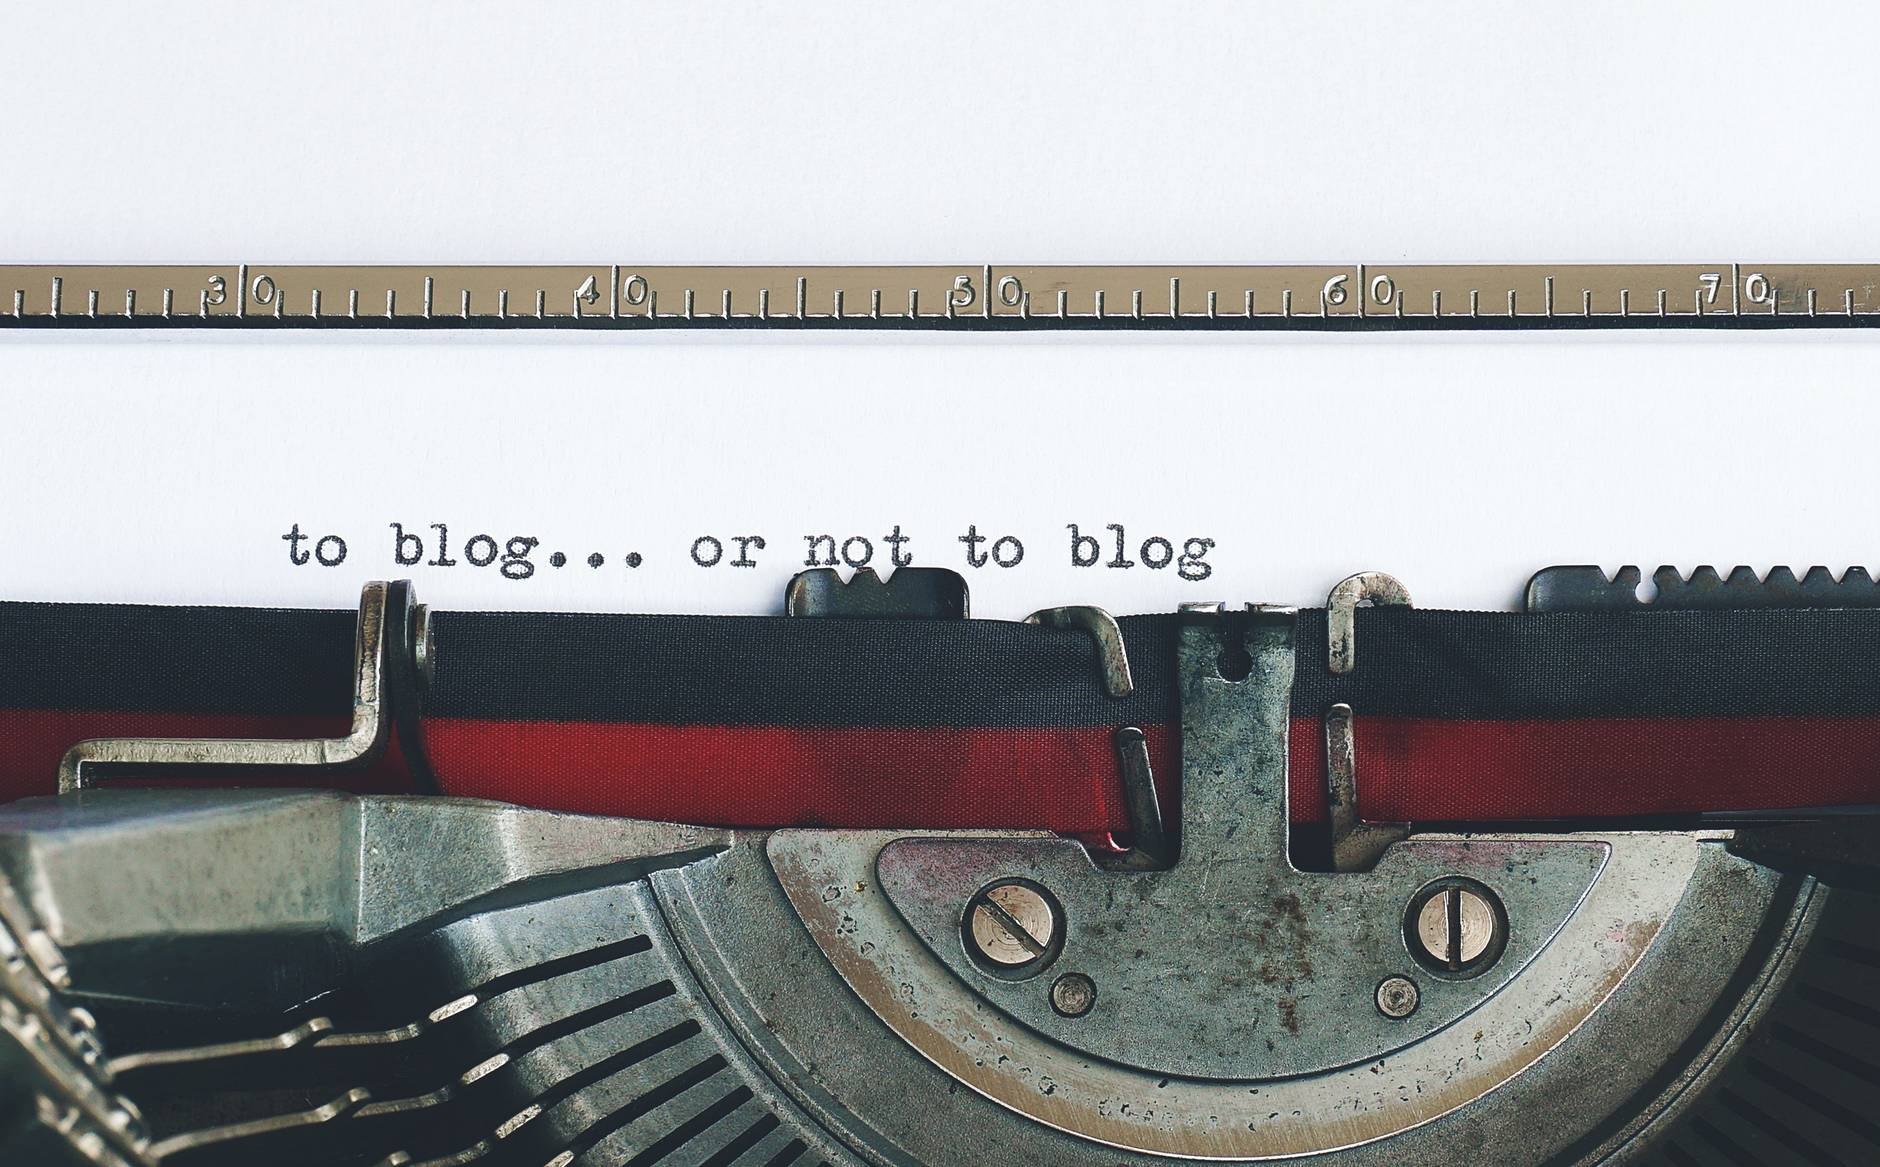 writing ghostwriting blogging cloud IT tech a vintage typewriter